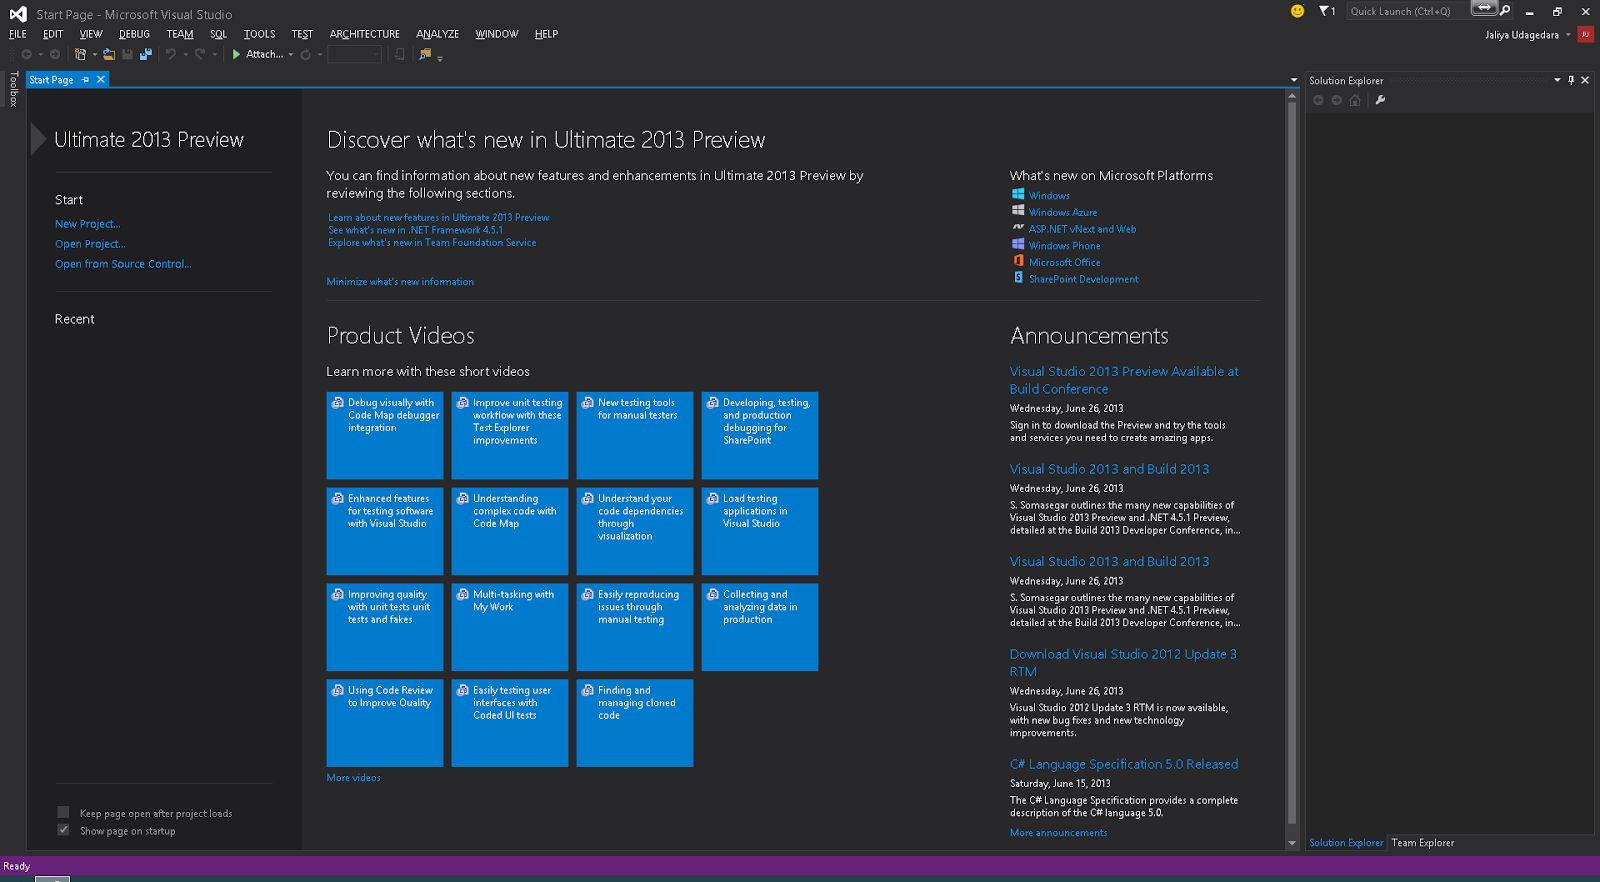 VisualStudio2013Preview.png